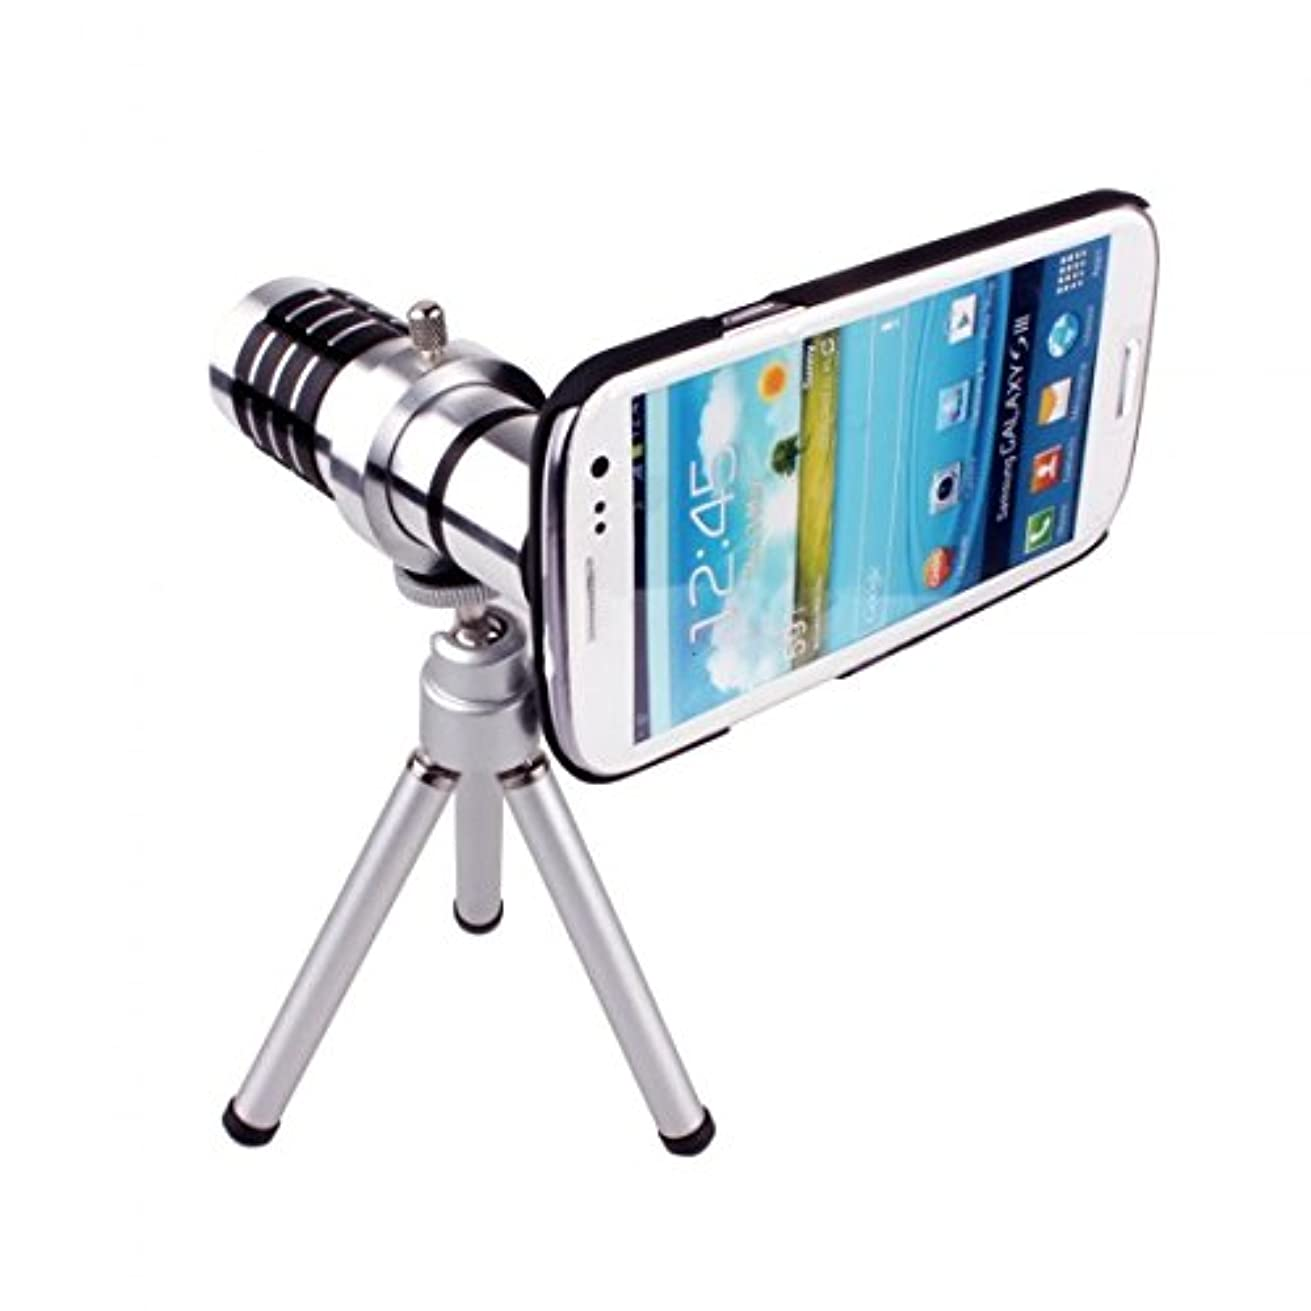 Kingzer 12X Zoom Phone Telephoto Camera Lens with Case Cover Kit Tripod for Samsung Galaxy S3 i9300